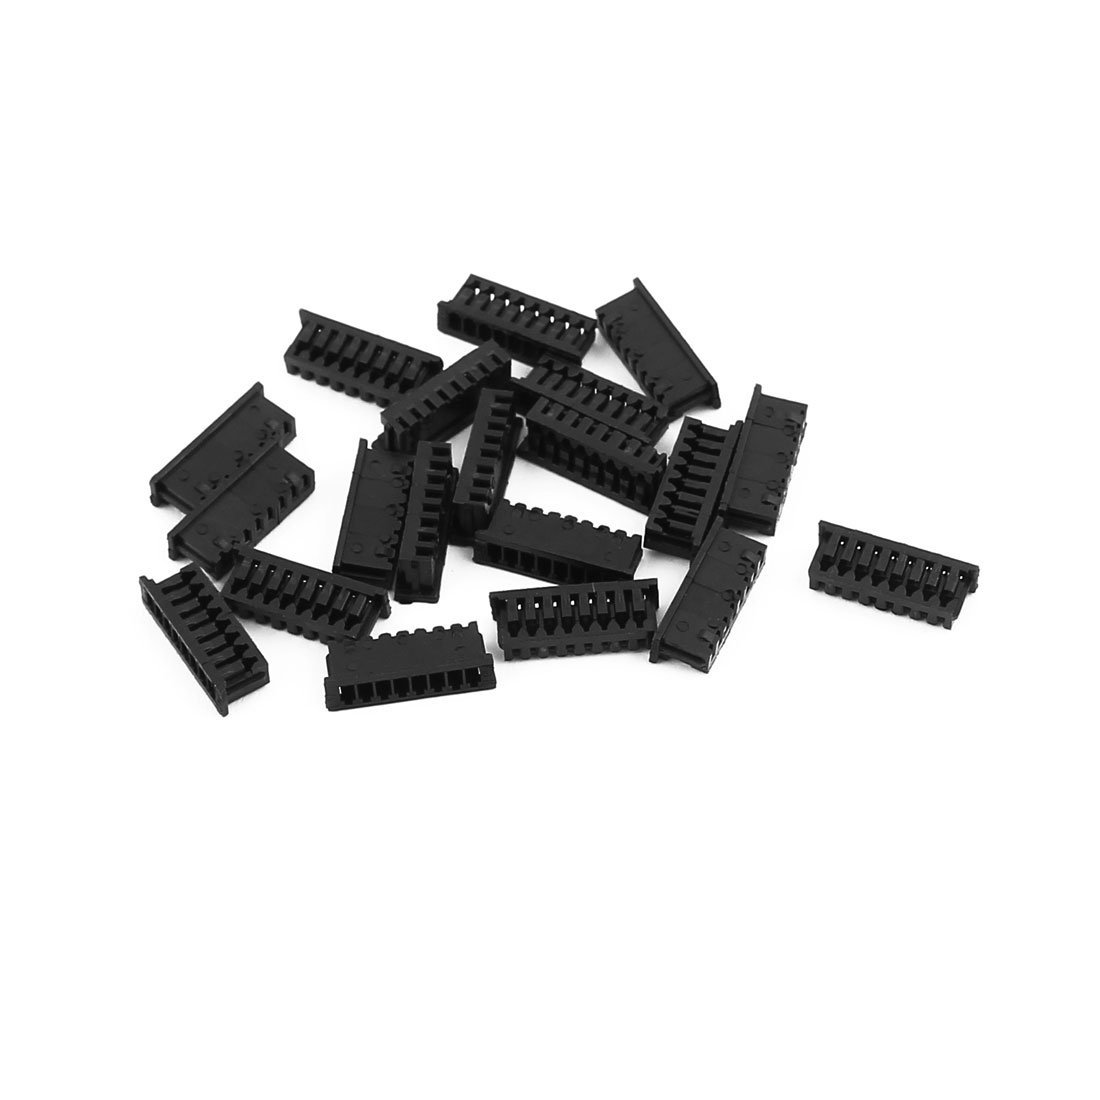 uxcell 20Pcs 1.25mm Pitch Single Row 8Terminals Y Style Socket Connector Plastic Shell Black